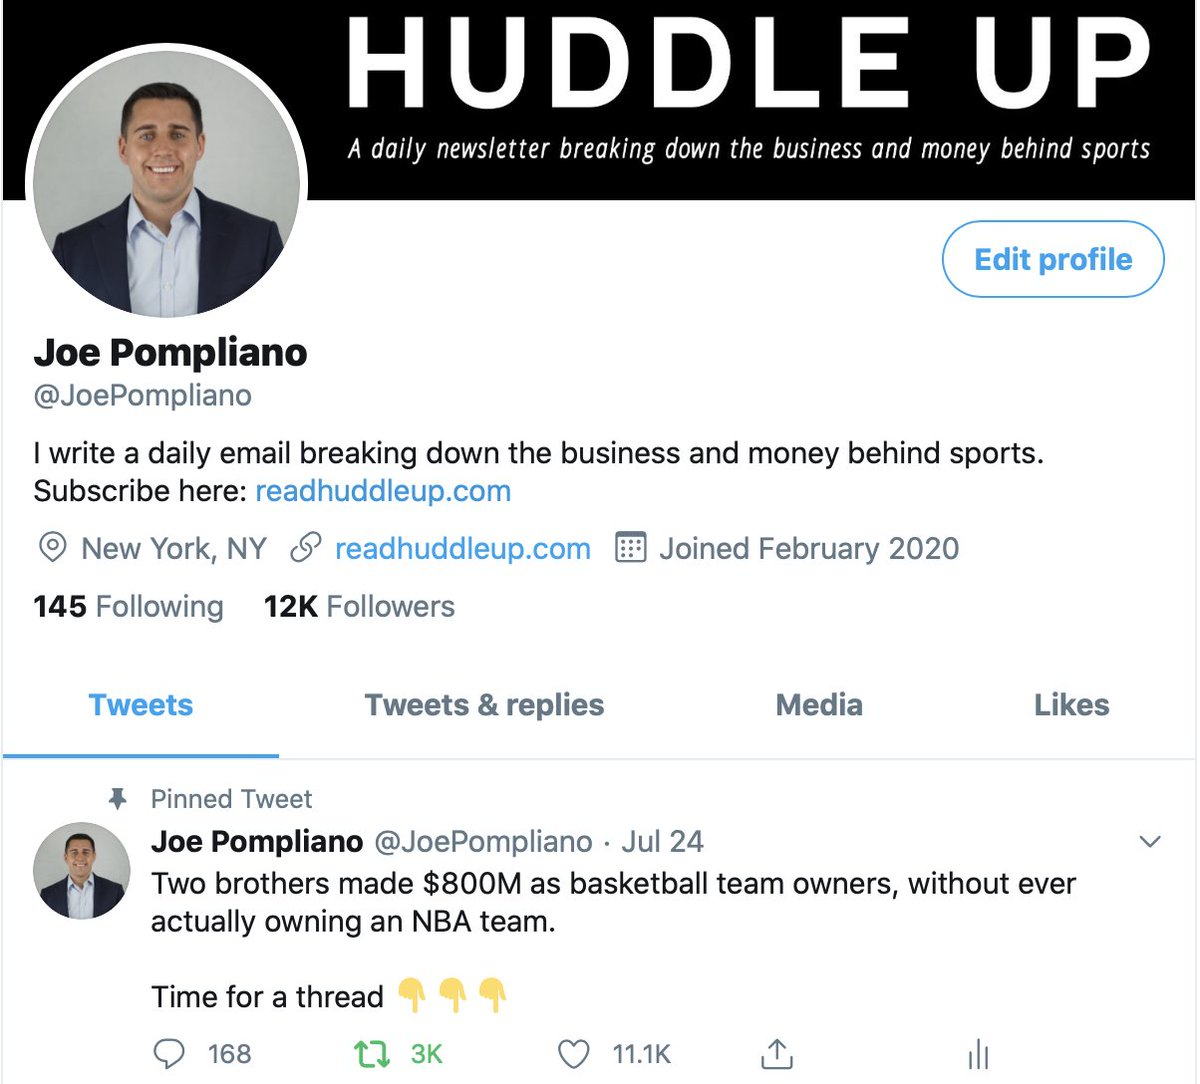 5) Pin your most engaged tweet.This will automatically give readers a feeling of legitimacy when they visit your profile.My visitors are instantly greeted with a clear description of the value I provide, my newsletter link, and a viral tweet for validity.